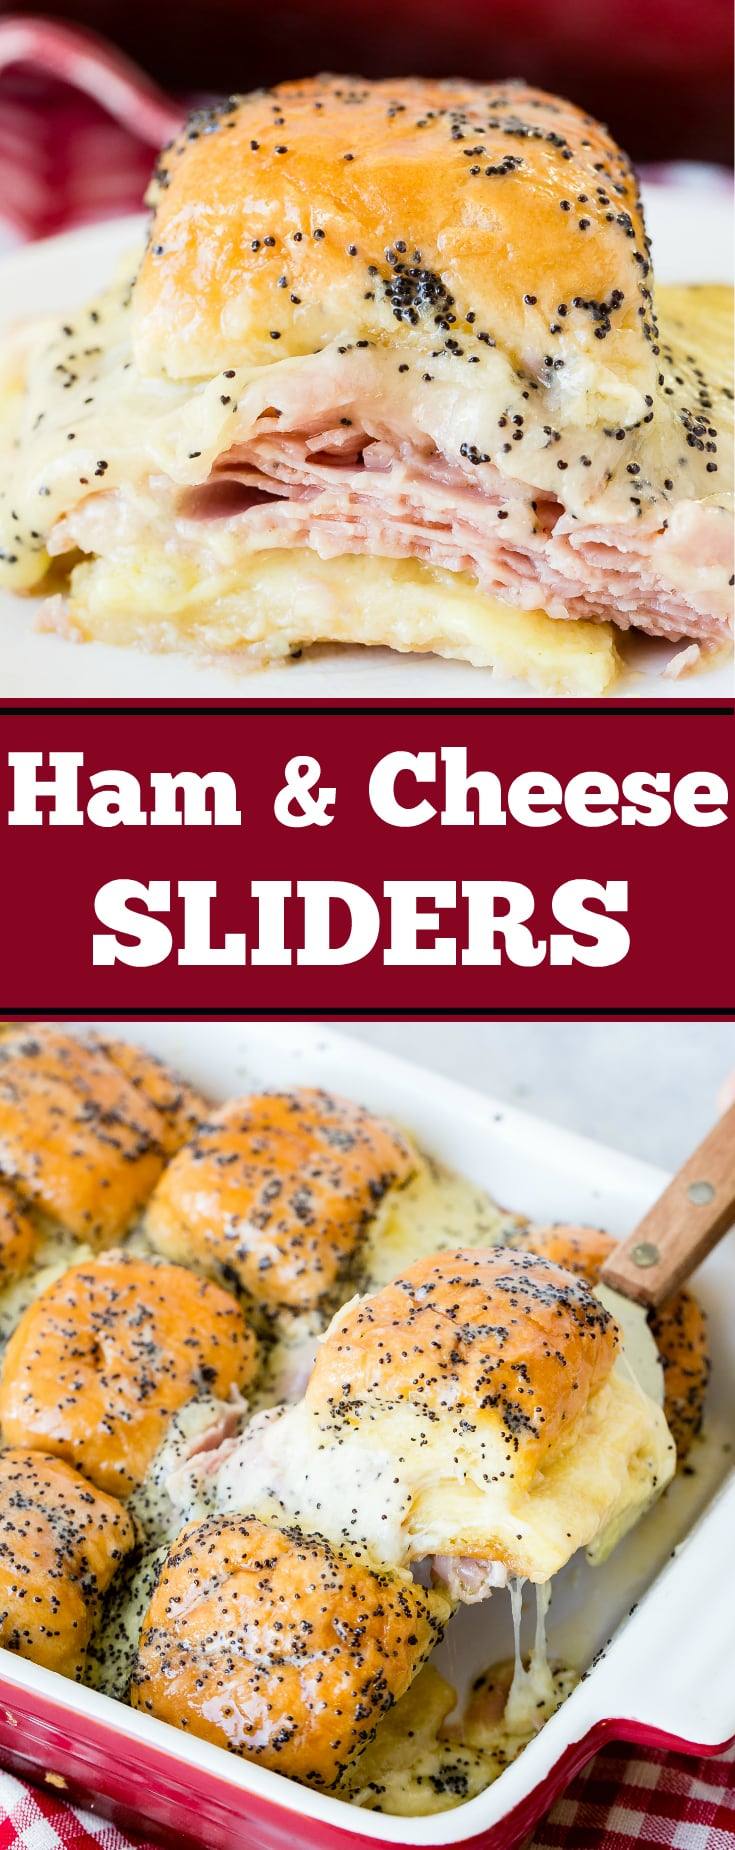 We don't know anyone who doesn't love ham and cheese sliders with poppy seed dressing. This recipe is perfect for leftover ham!